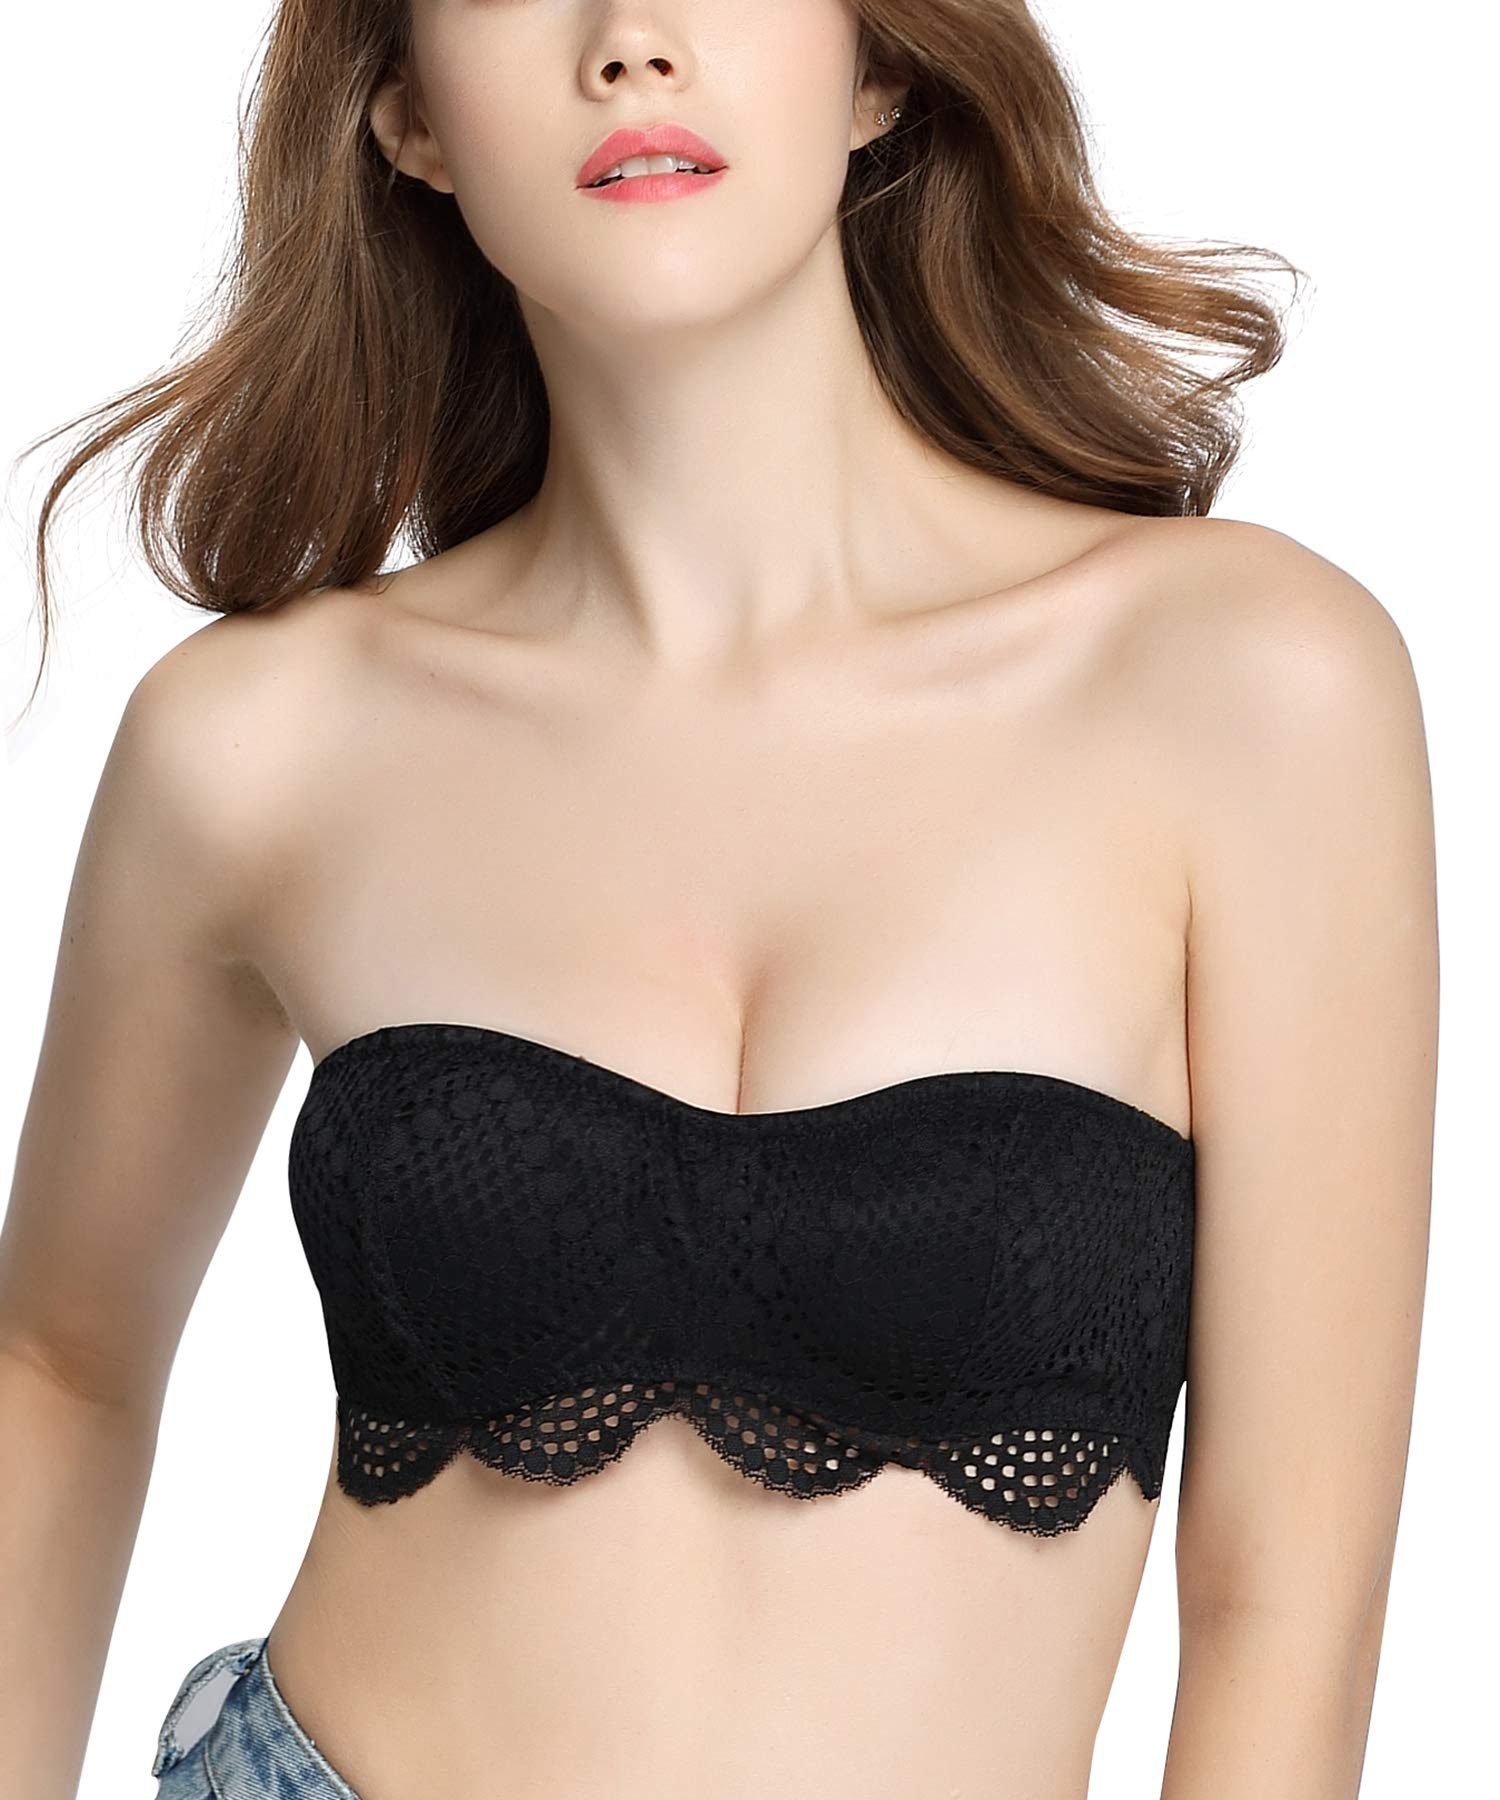 DotVol Women's Non Padded Strappy Lace Tube Top Bandeau Underwire Strapless Bra